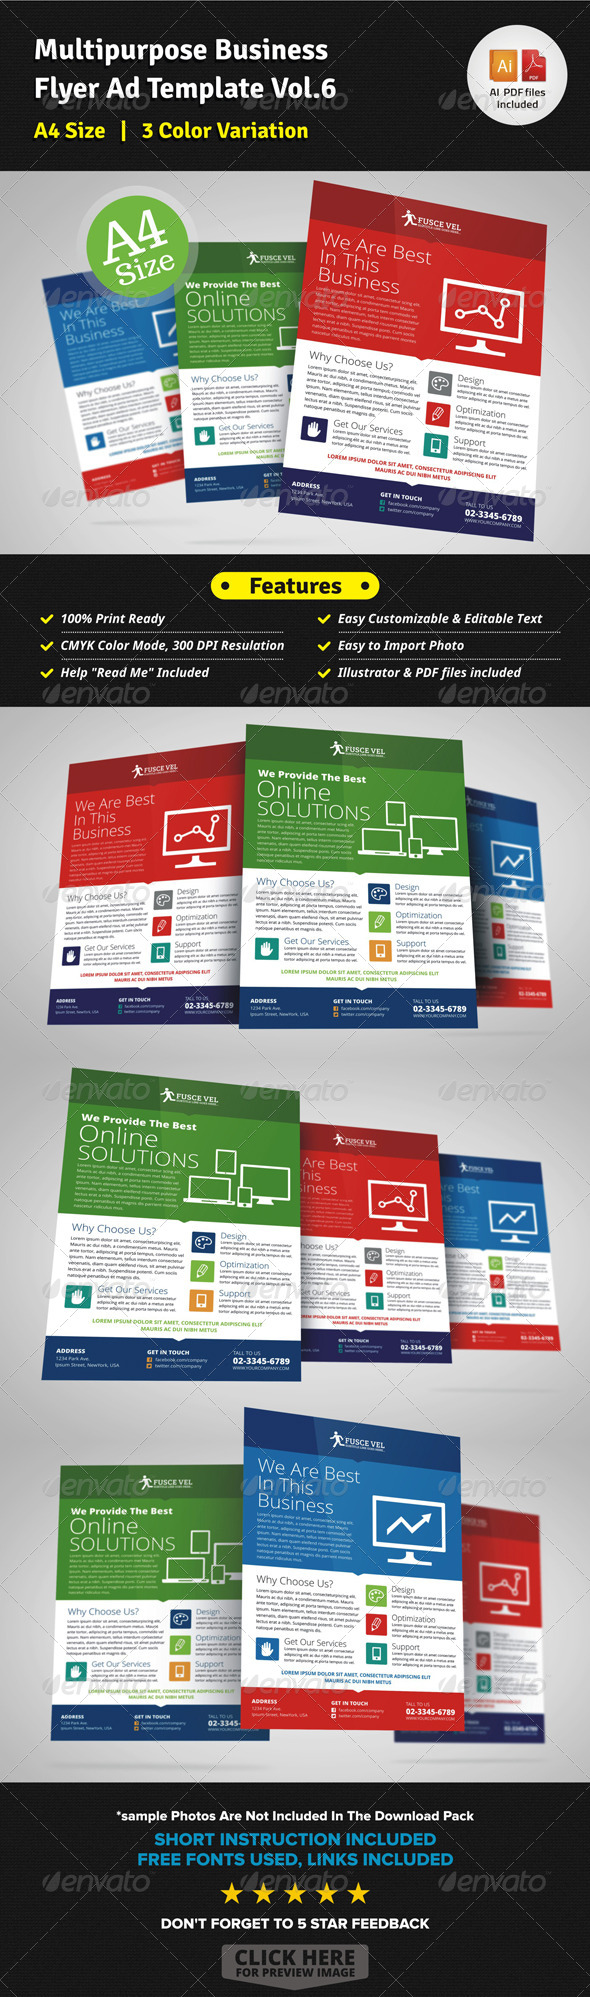 Multipurpose Business Flyer Template Vol.6 - Corporate Flyers